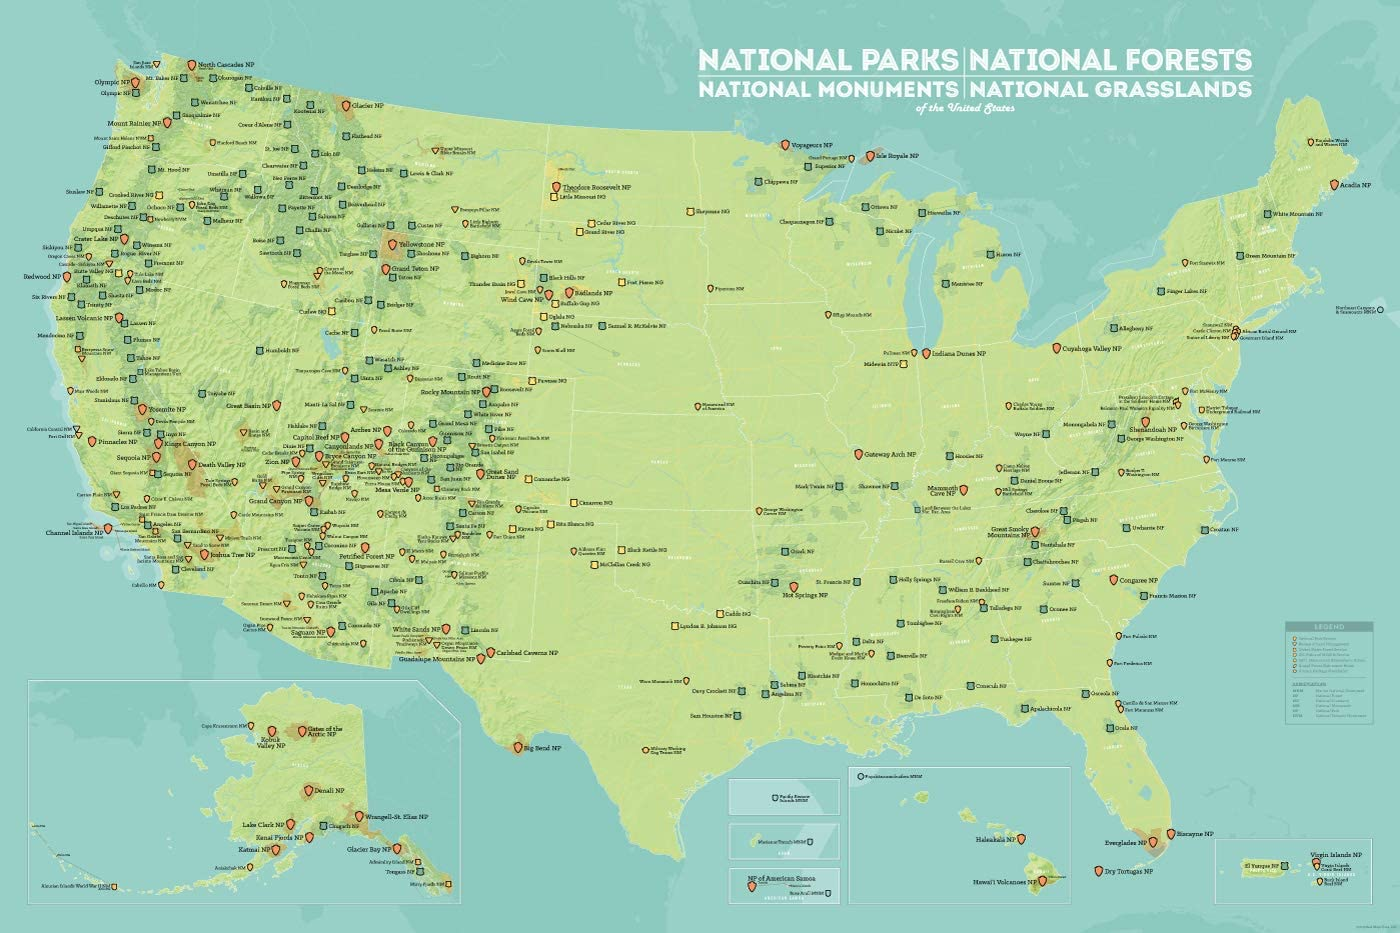 Map Of Us National Parks And Monuments Amazon.com: US National Parks, Monuments & Forests Map 24x36